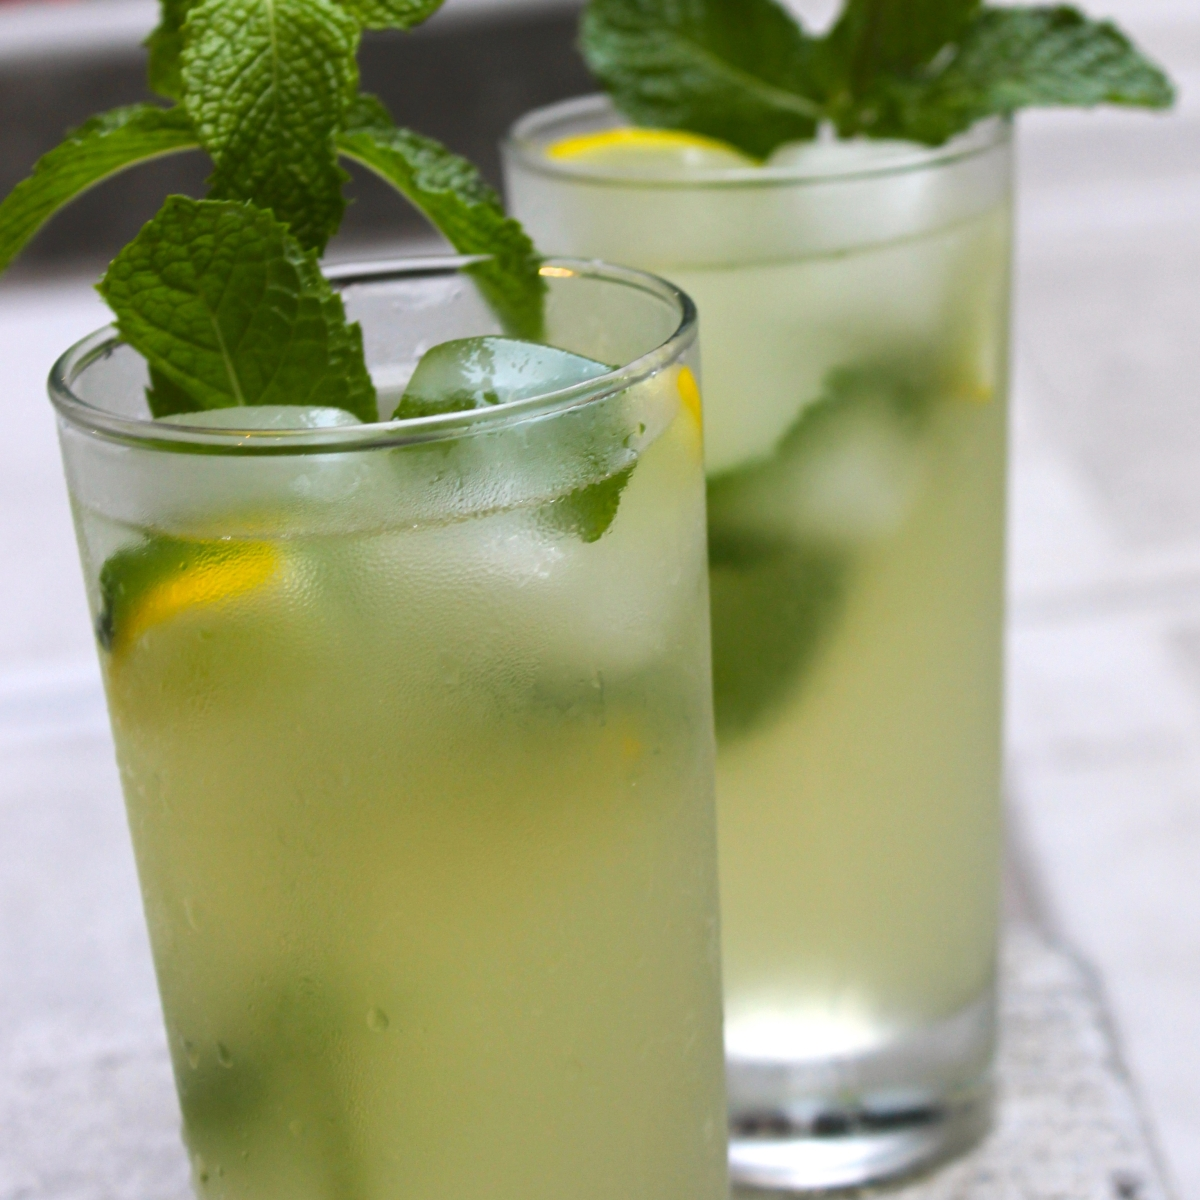 In Search Of The Abu Dhabi Lemon Mint